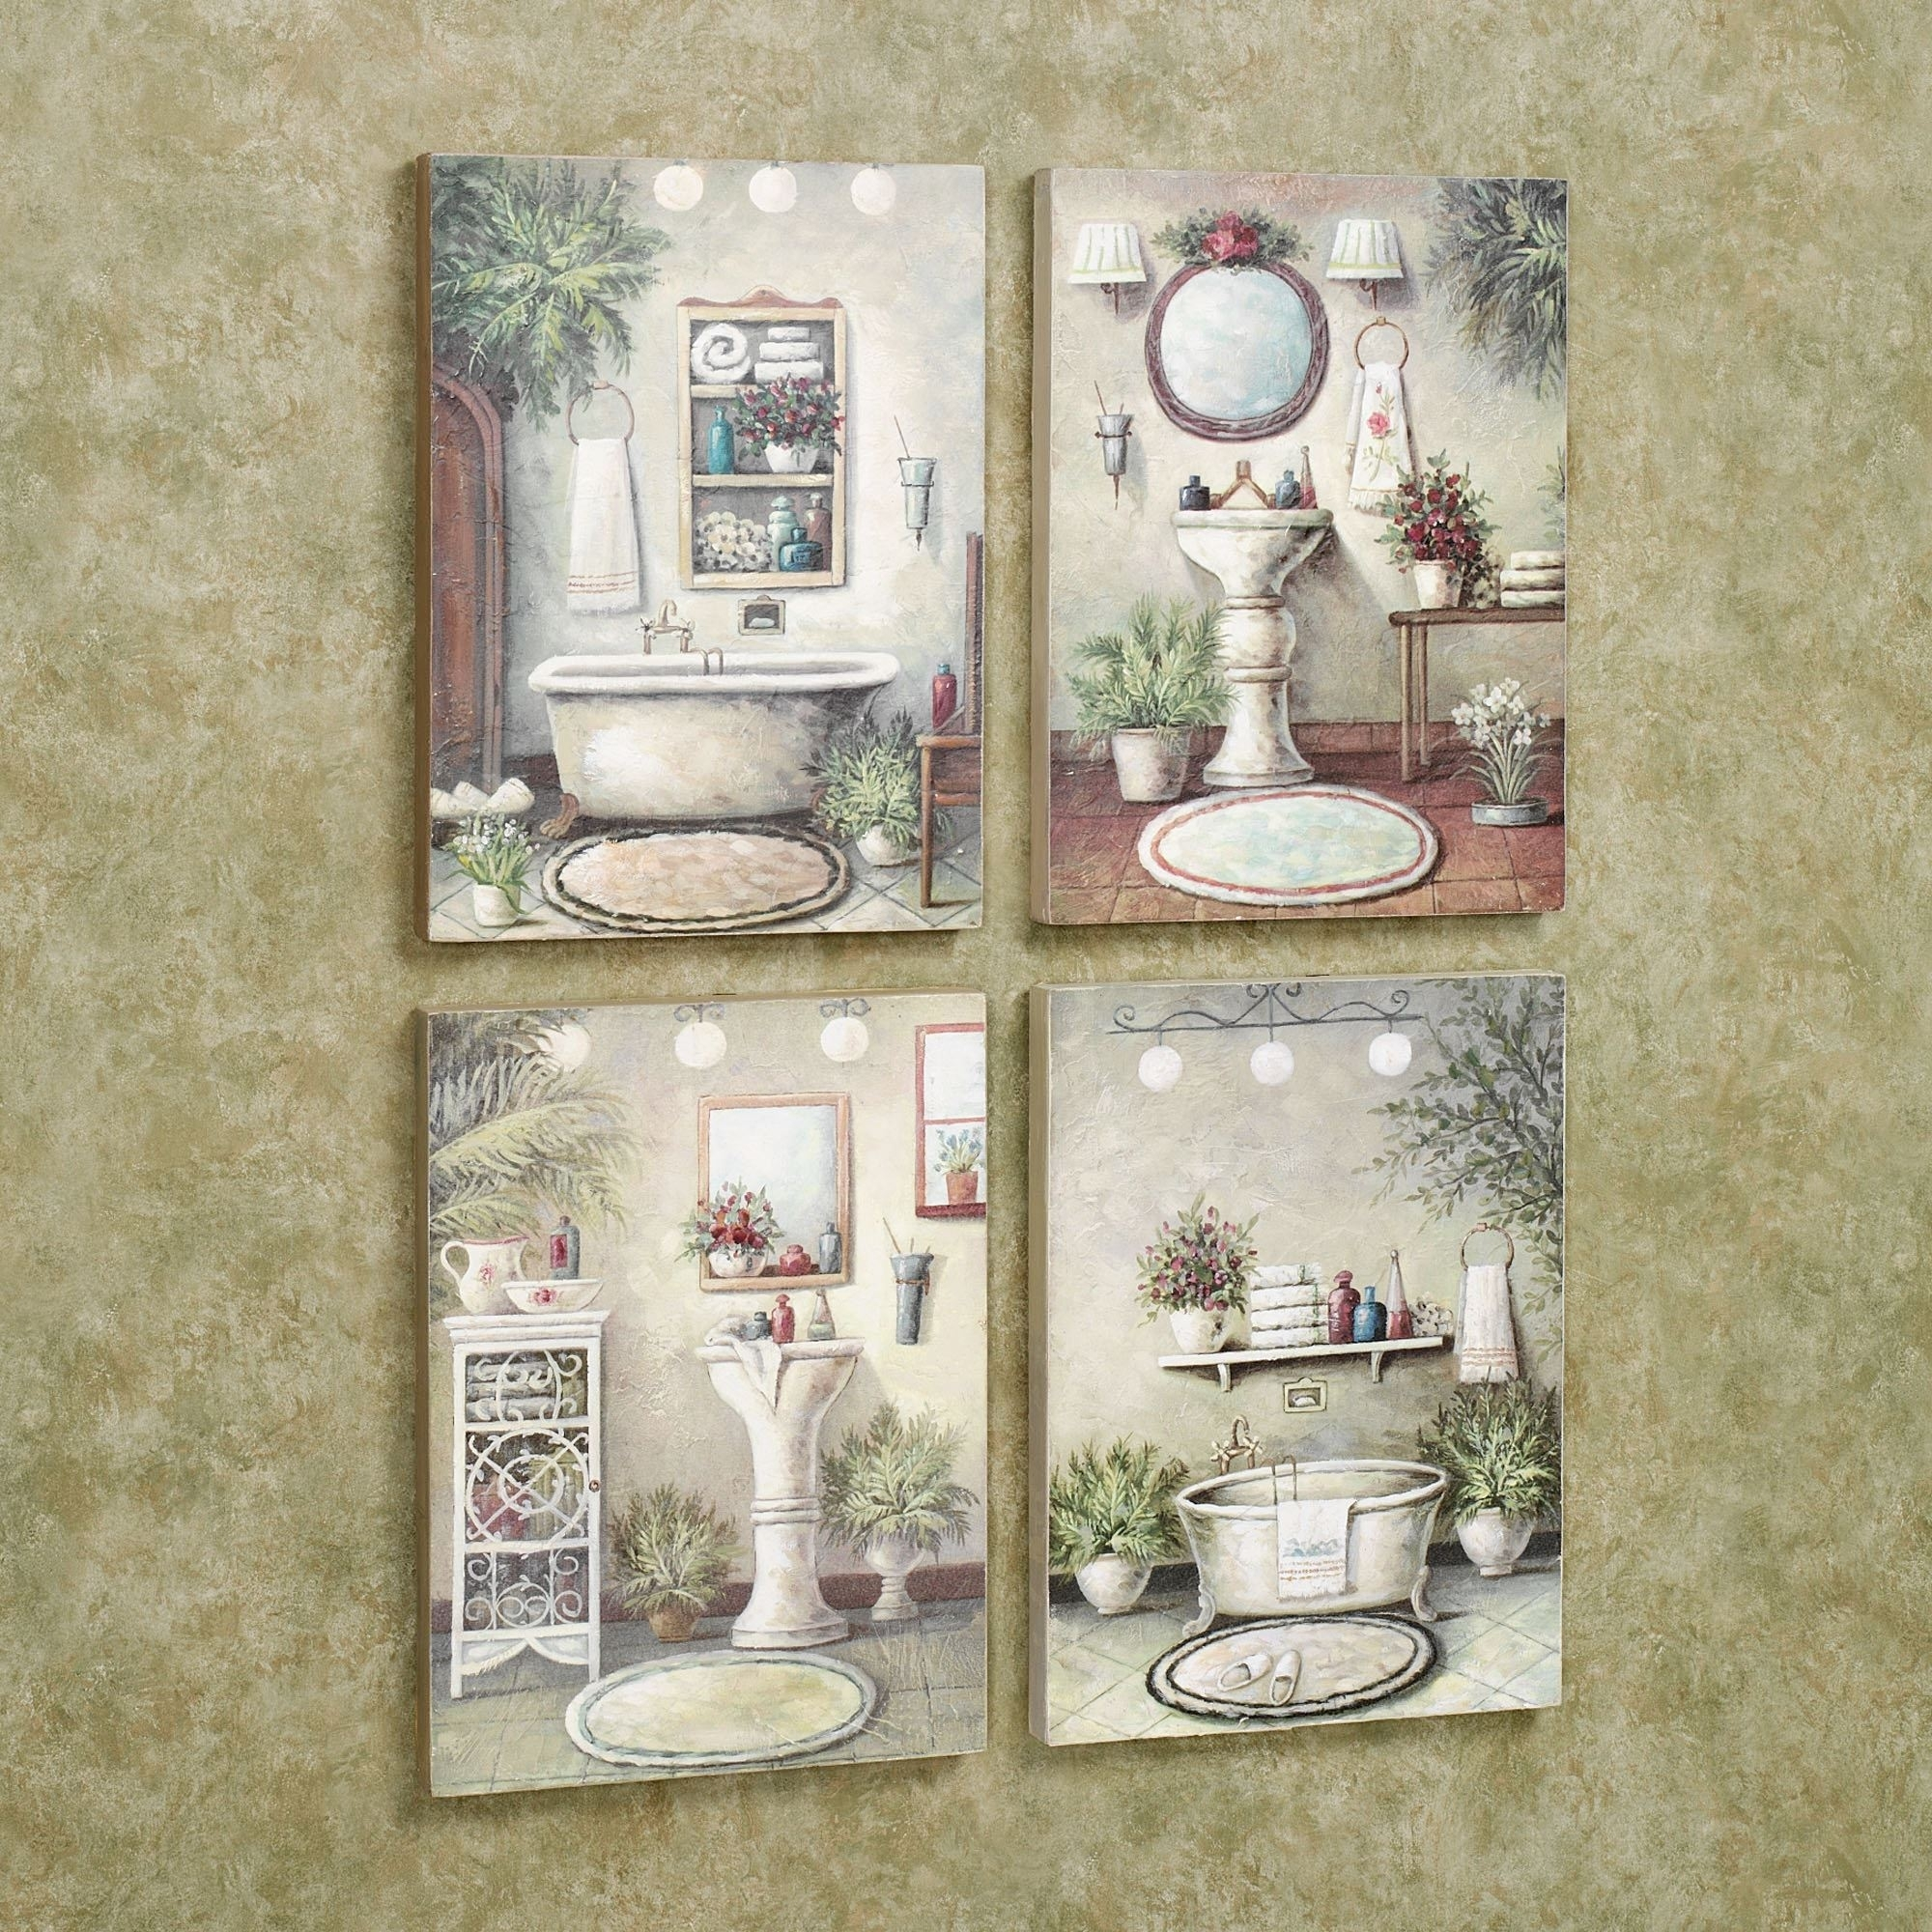 Bathroom Bliss Wooden Wall Art Plaque Set For Most Popular Wall Art For Bathroom (Gallery 16 of 20)